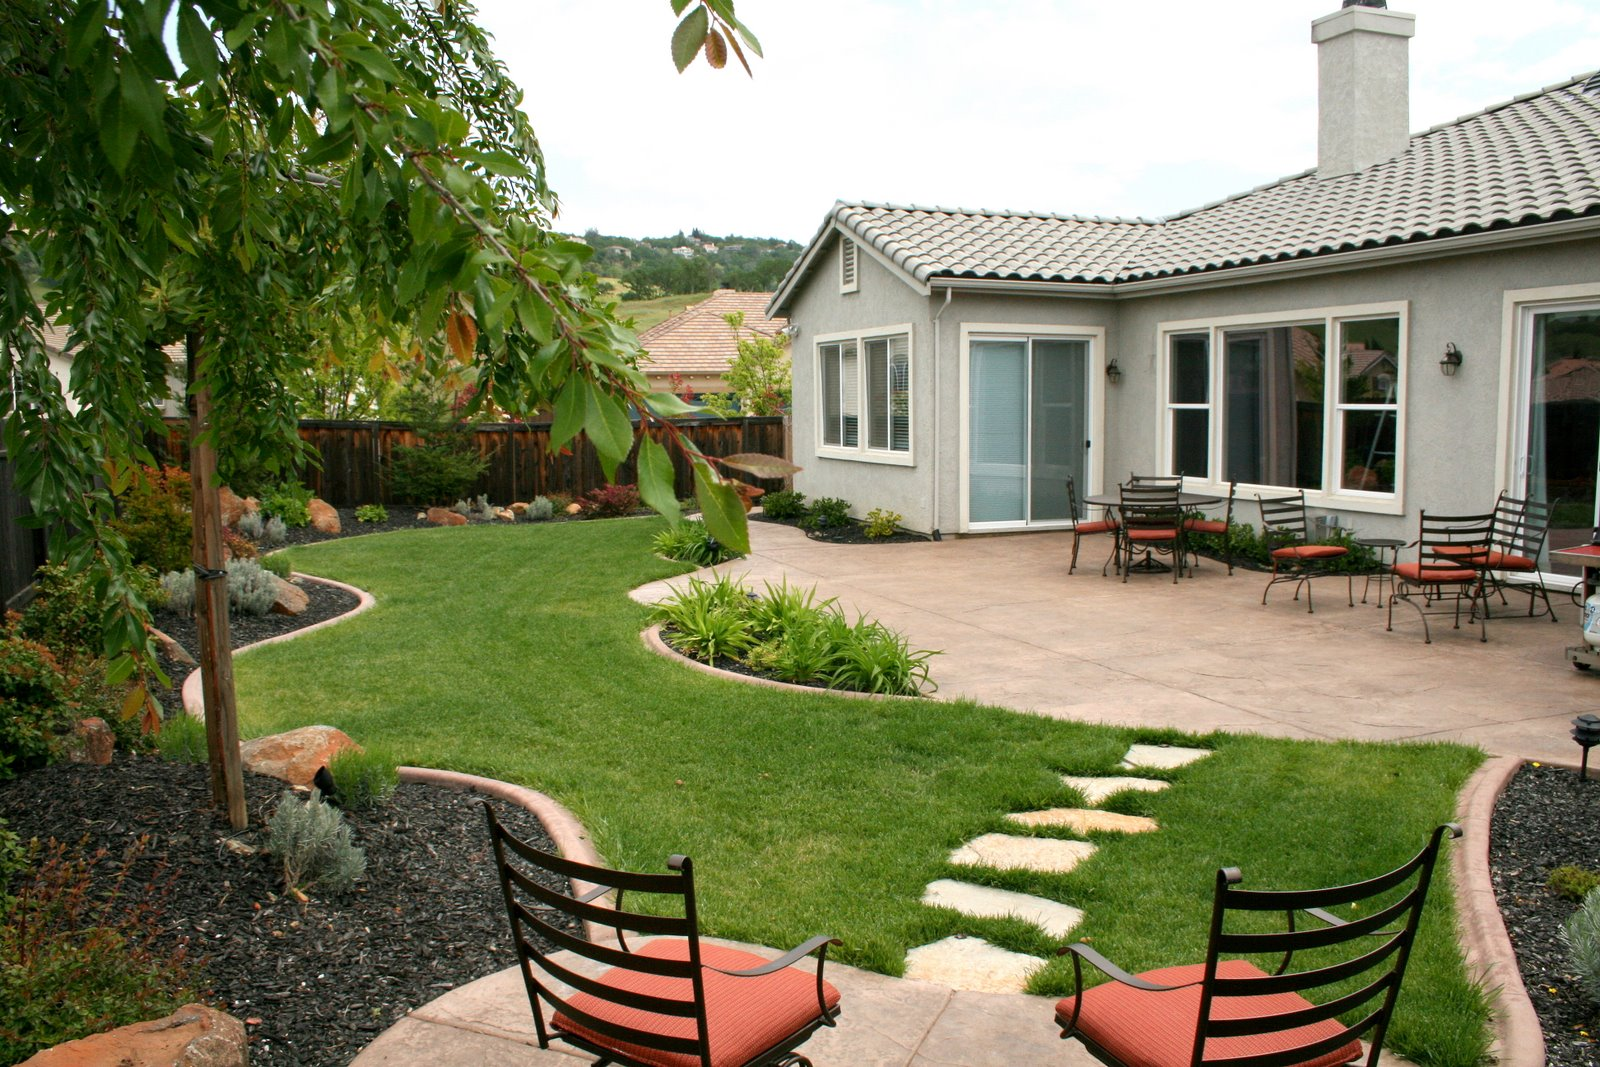 Landscaping your backyard!